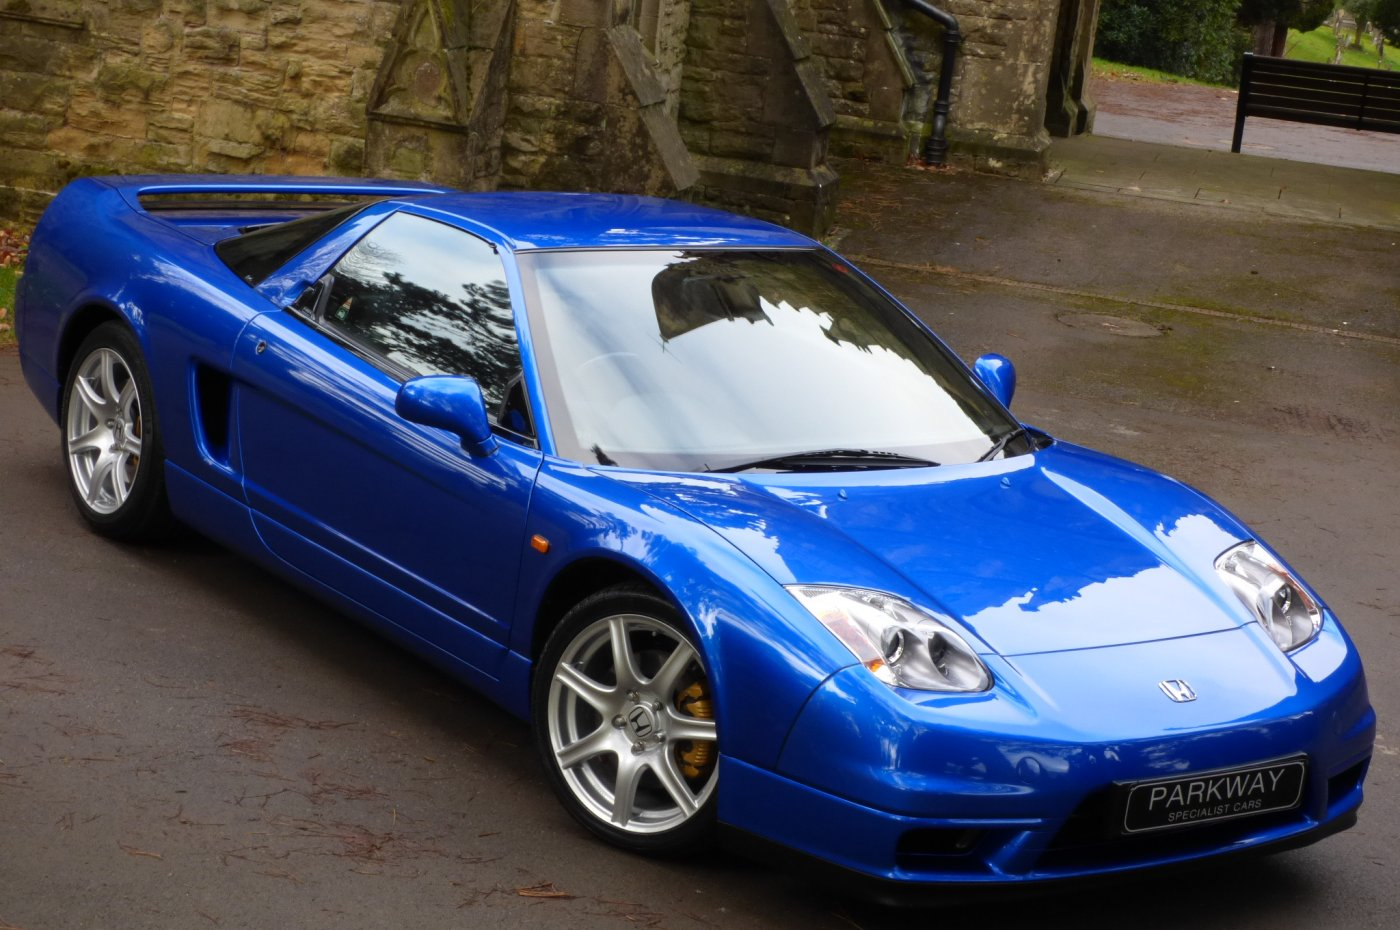 For Sale Jenson Button S Old 2004 Honda Nsx The Drive